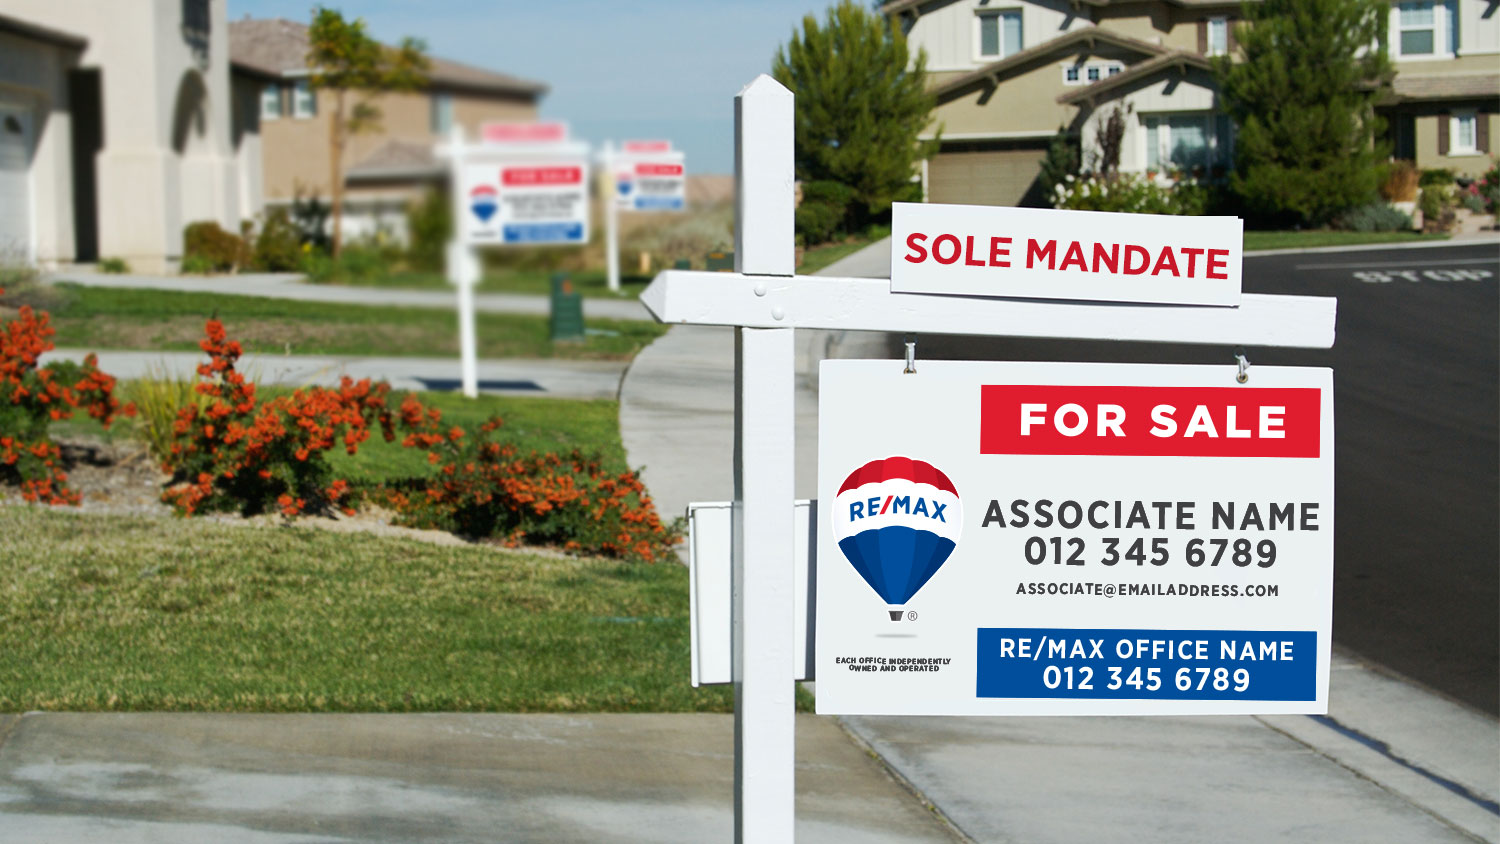 SOLE MANDATE HELPS YOU SELL IN CURRENT BUYER'S MARKET